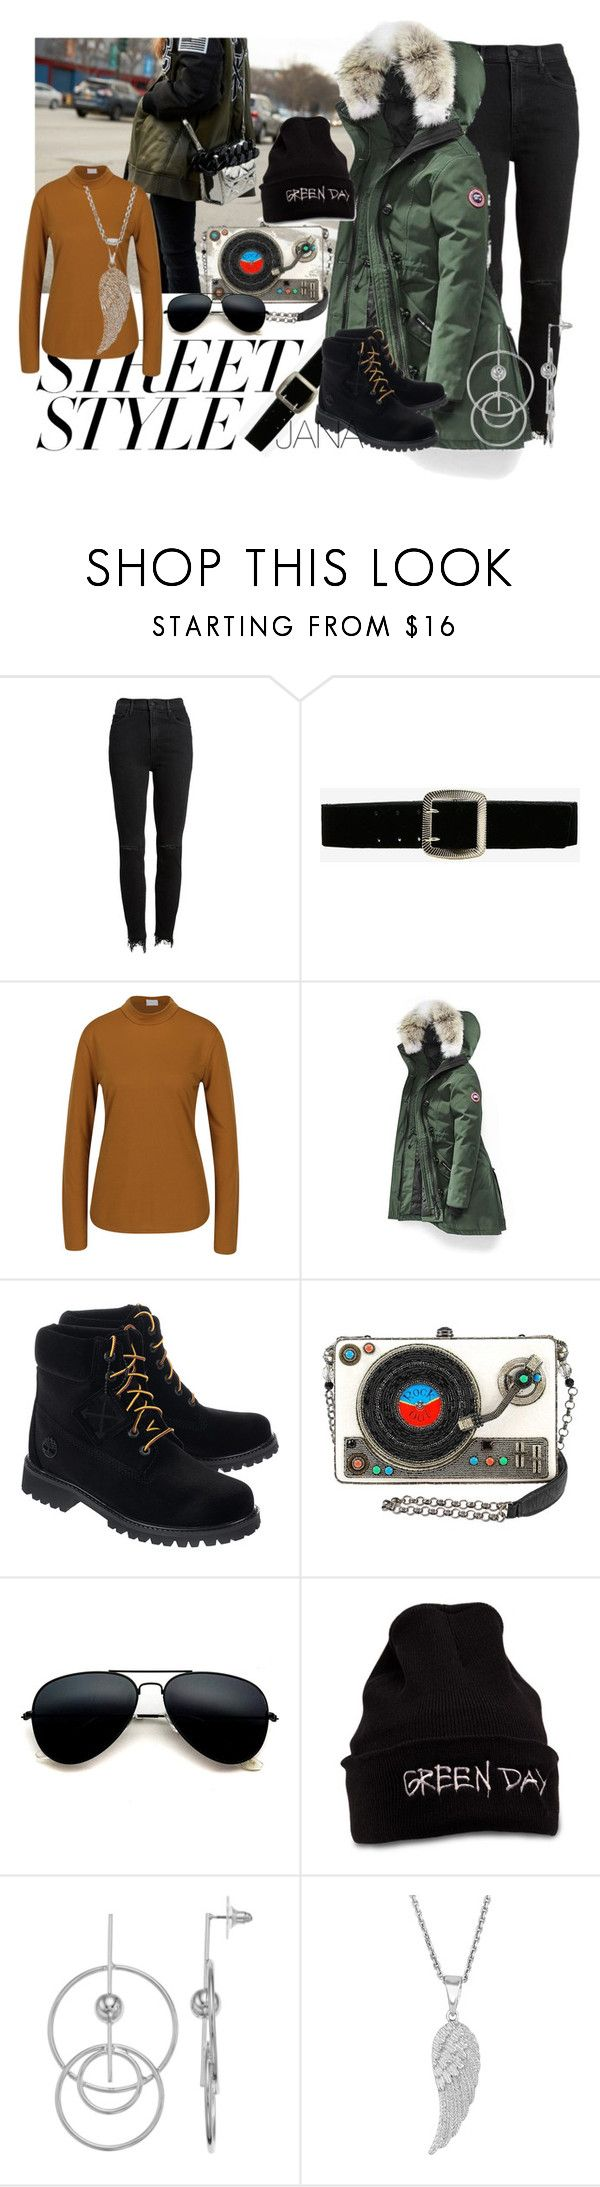 """NA POHODU"" by jana-macickova-weissova ❤ liked on Polyvore featuring Mother, Express, Jacqueline De Yong, Canada Goose, Off-White, Ball, contestentry and nyfwstreetstyle"